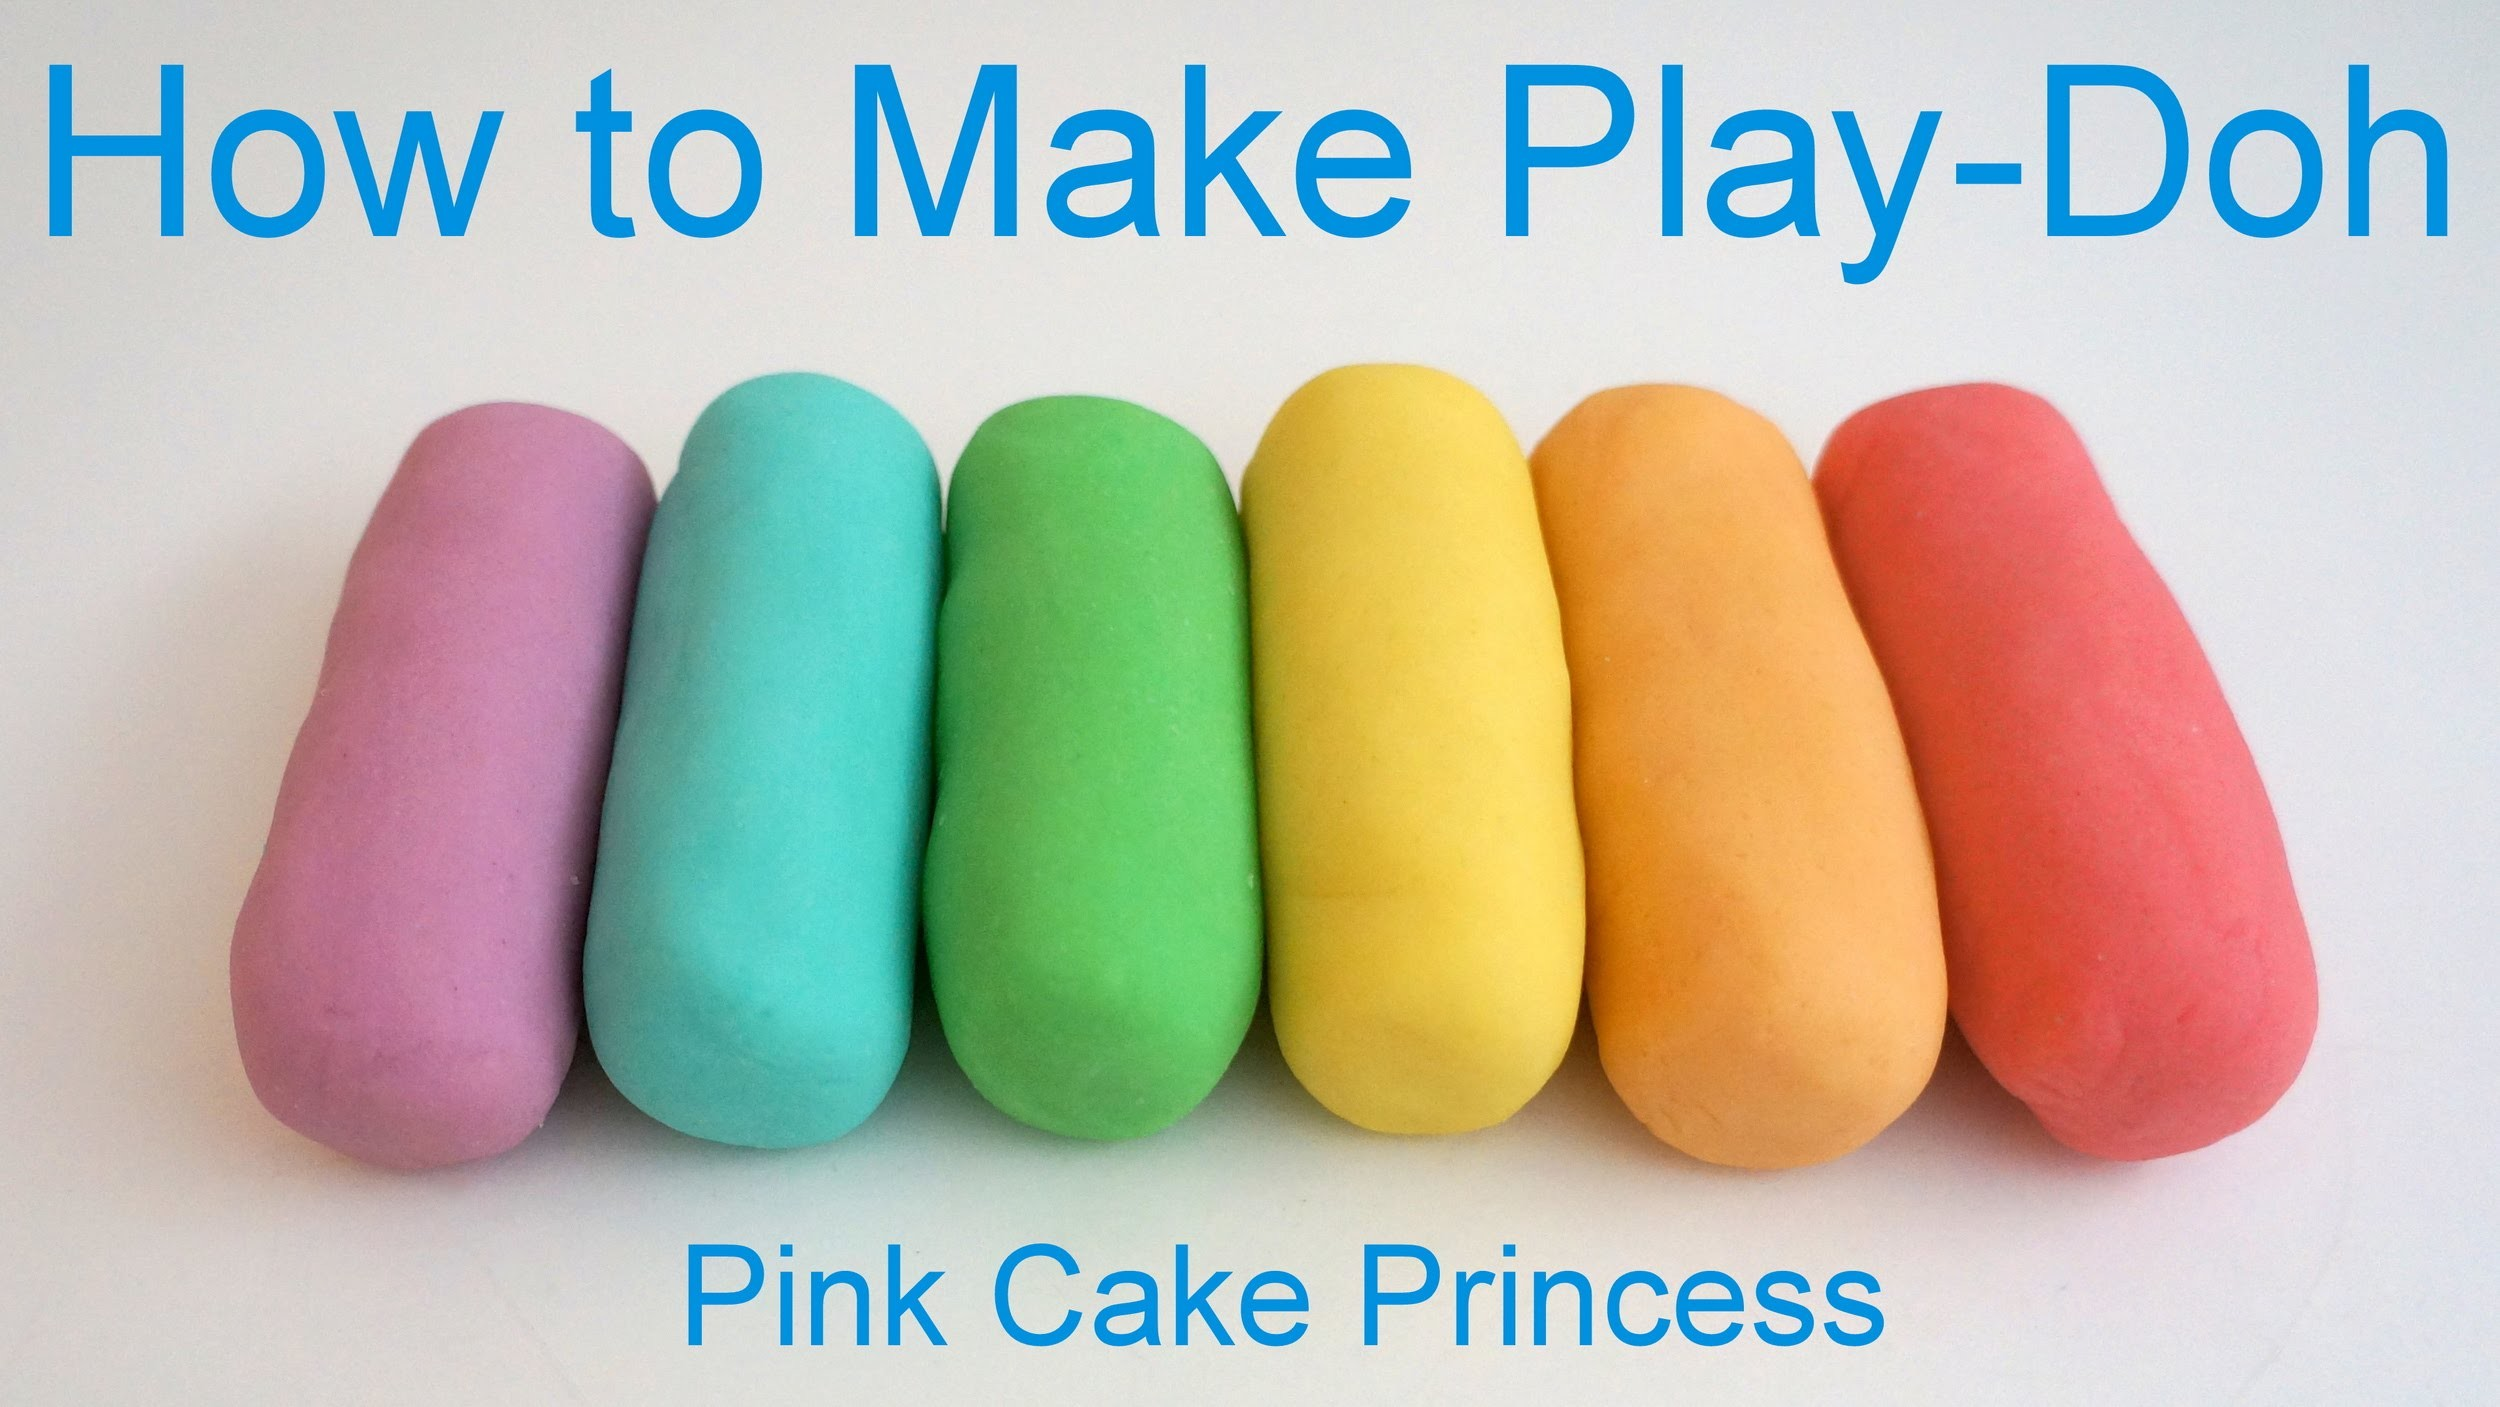 Best Play Doh Recipe! How to Make Easy Play-Doh by Pink Cake Princess